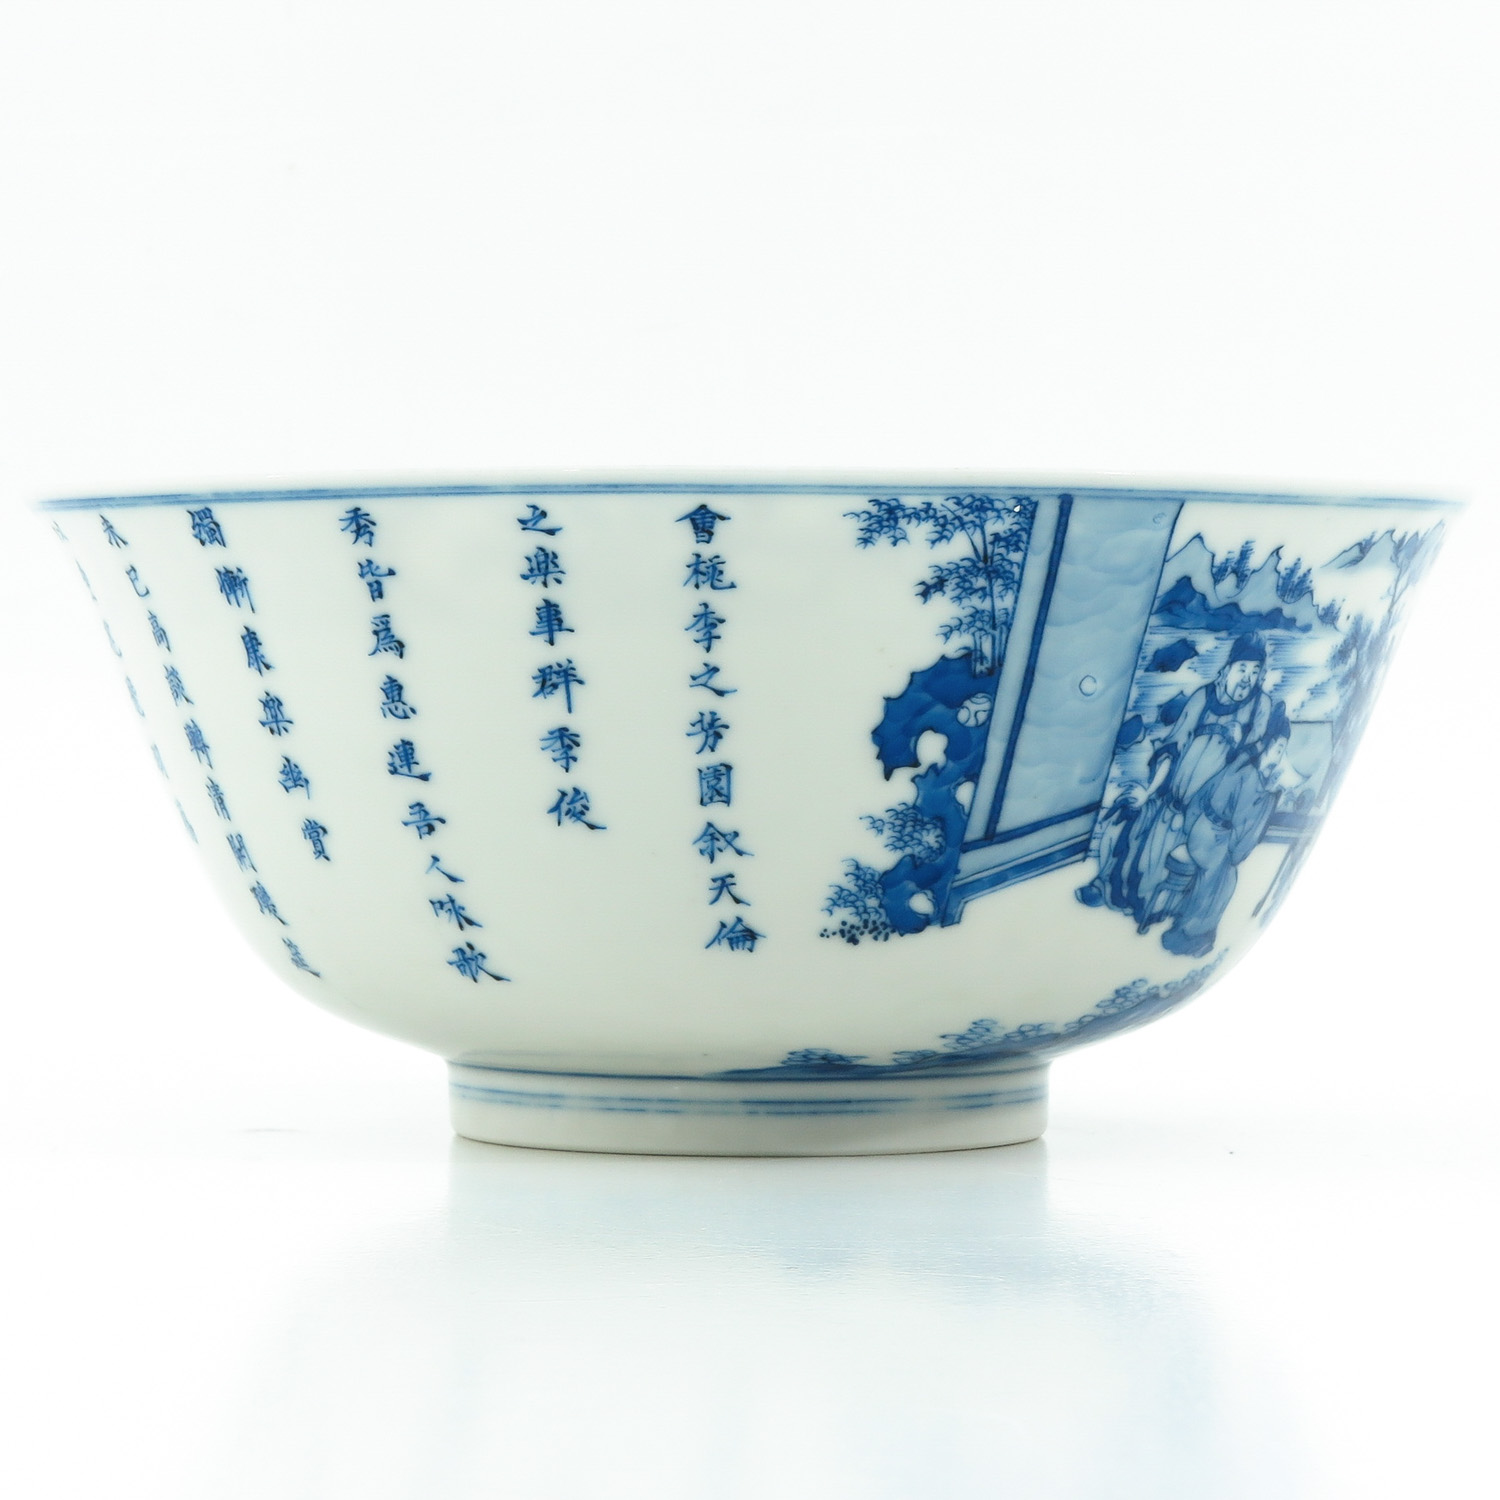 A Blue and White Bowl - Image 3 of 10